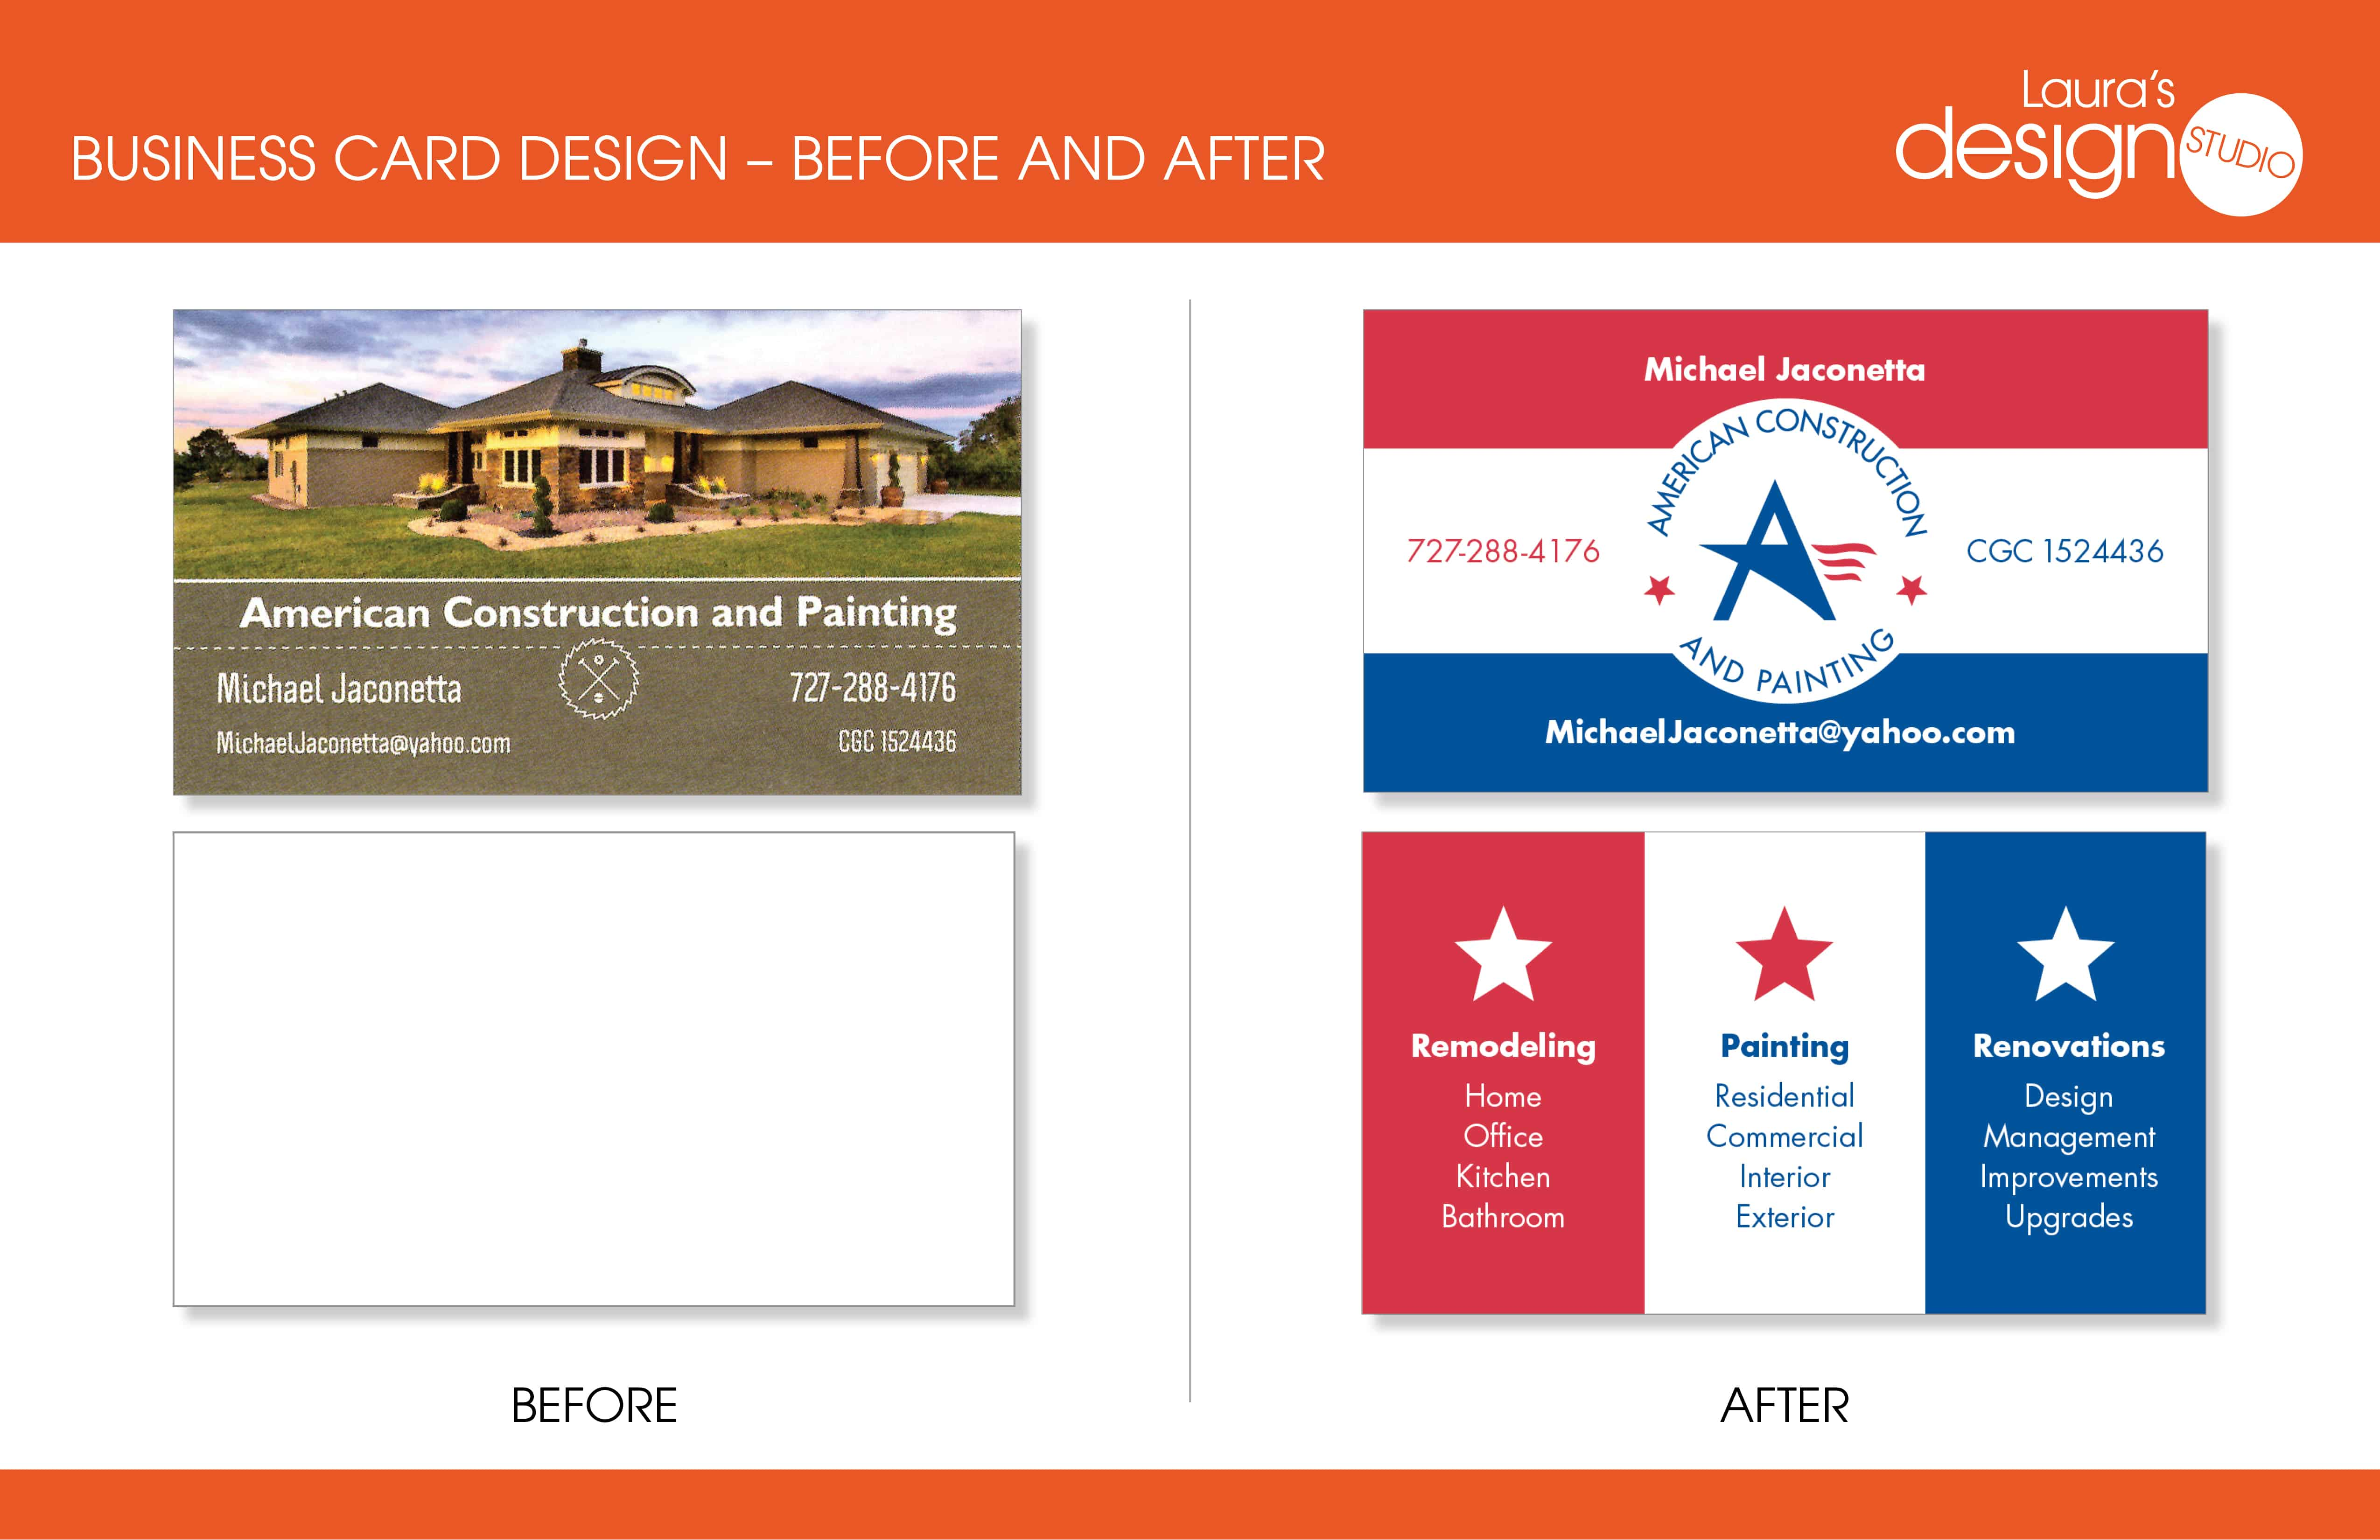 American construction logo and business card before and after before and after logo and business card design reheart Image collections